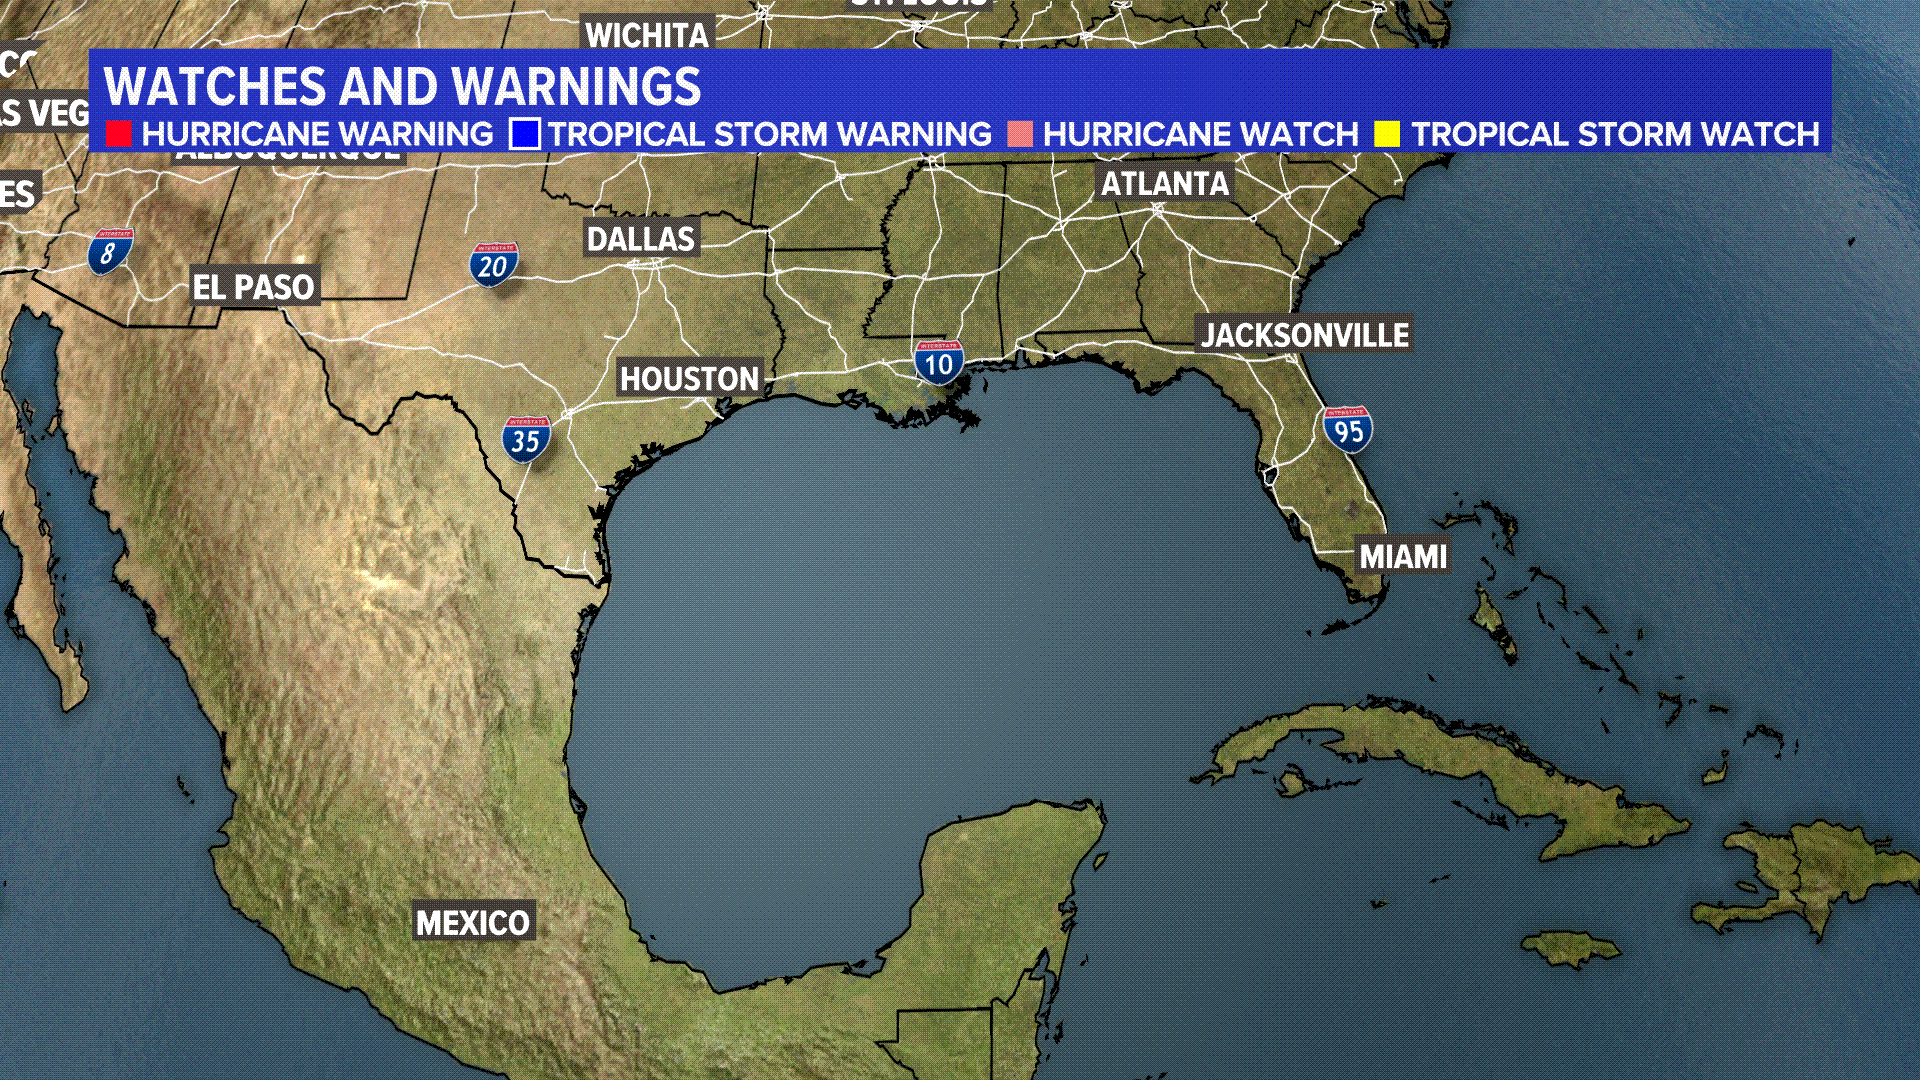 Tropical Watches/Warnings